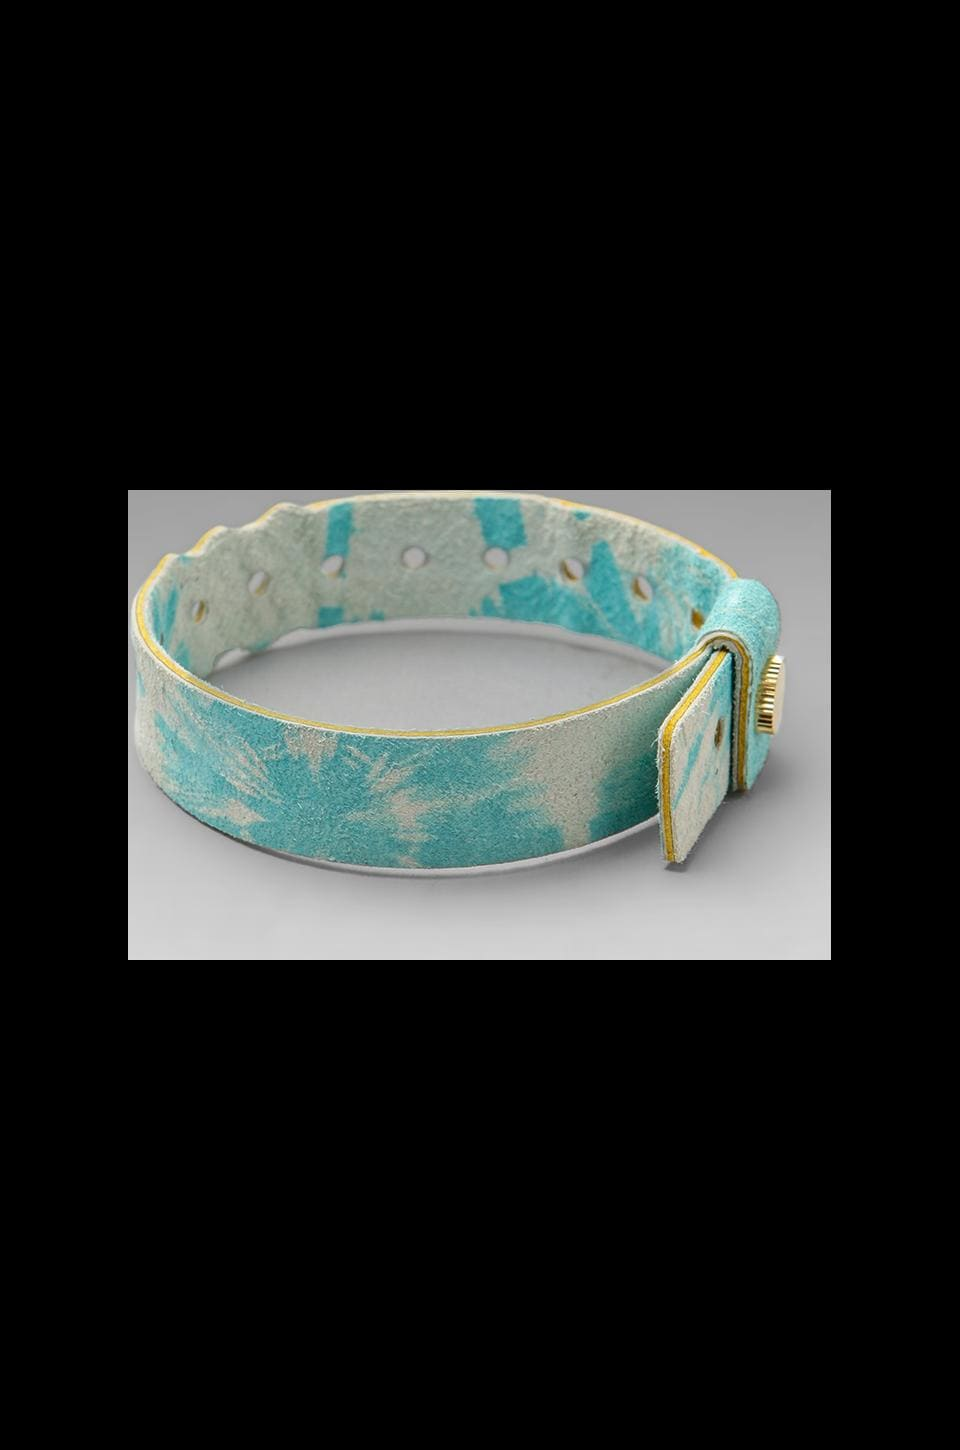 Cast of Vices Coming Or Going Concert Bracelet in Blue Tie Dye